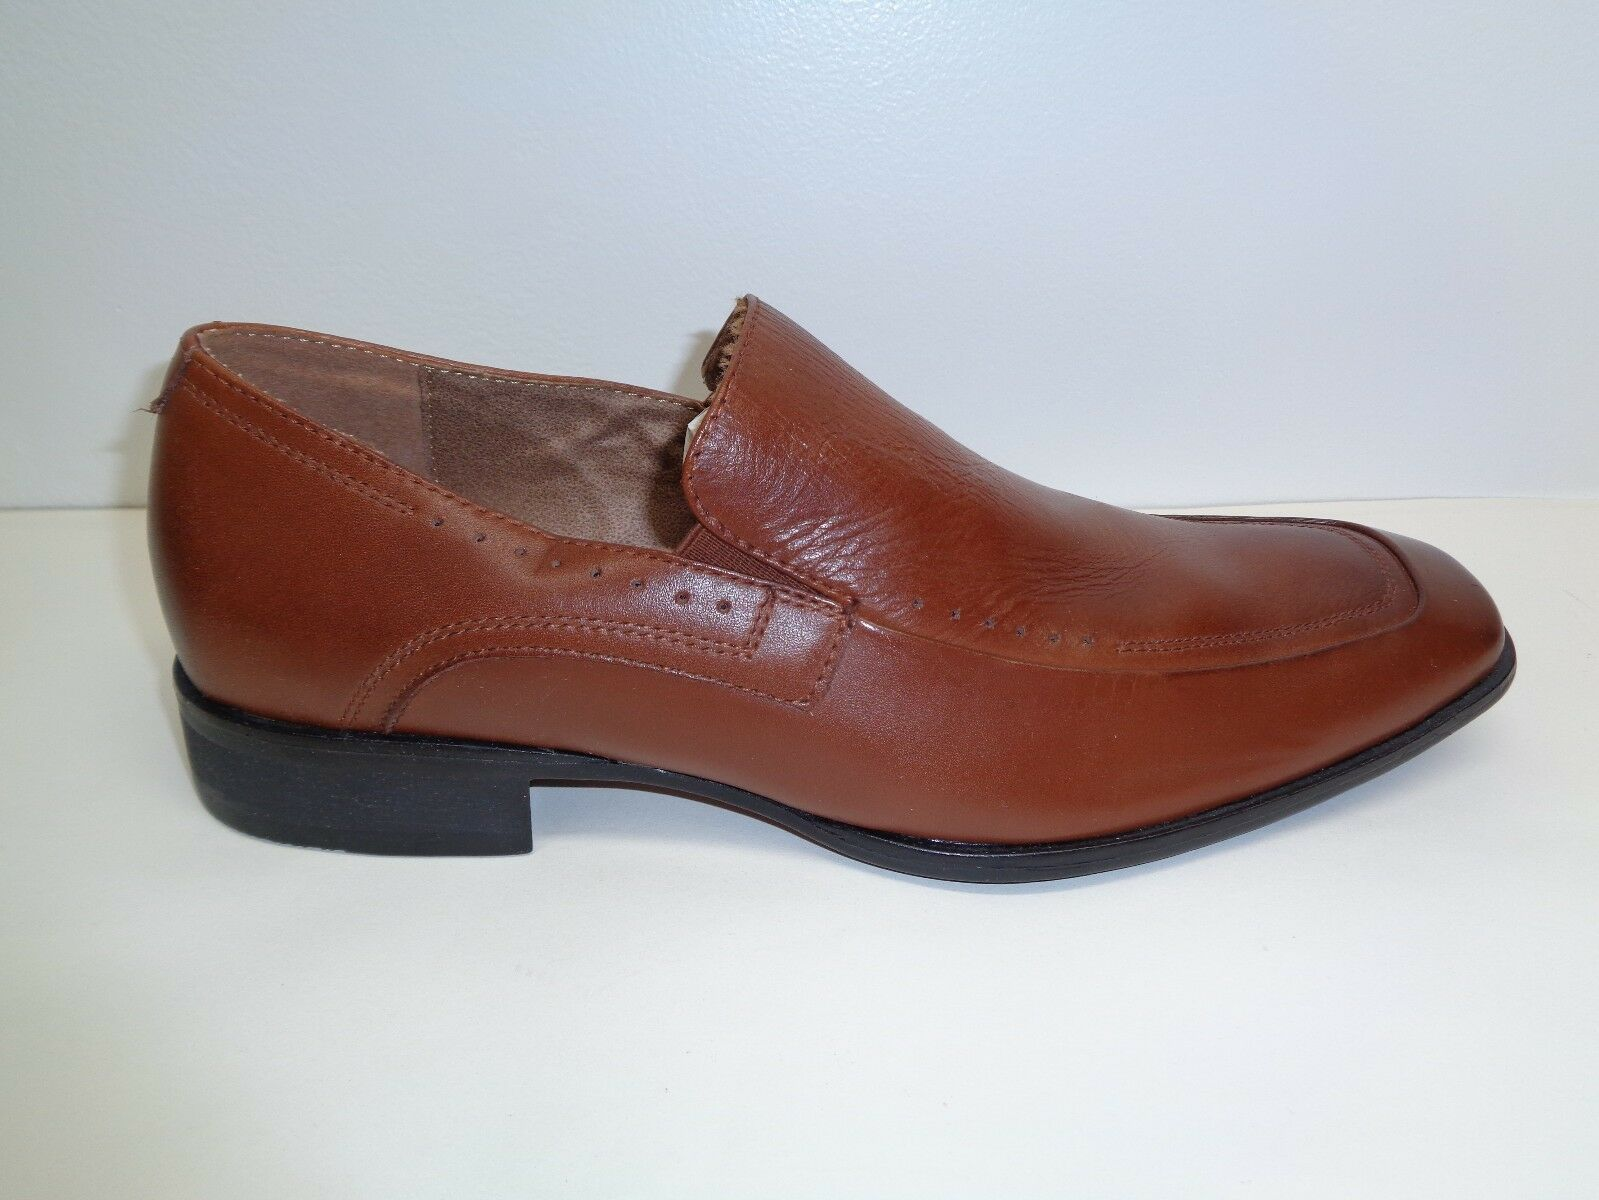 Steve Madden Size 8 M SUTTERR Tan Leather Slip On Loafers Oxfords New Mens Shoes